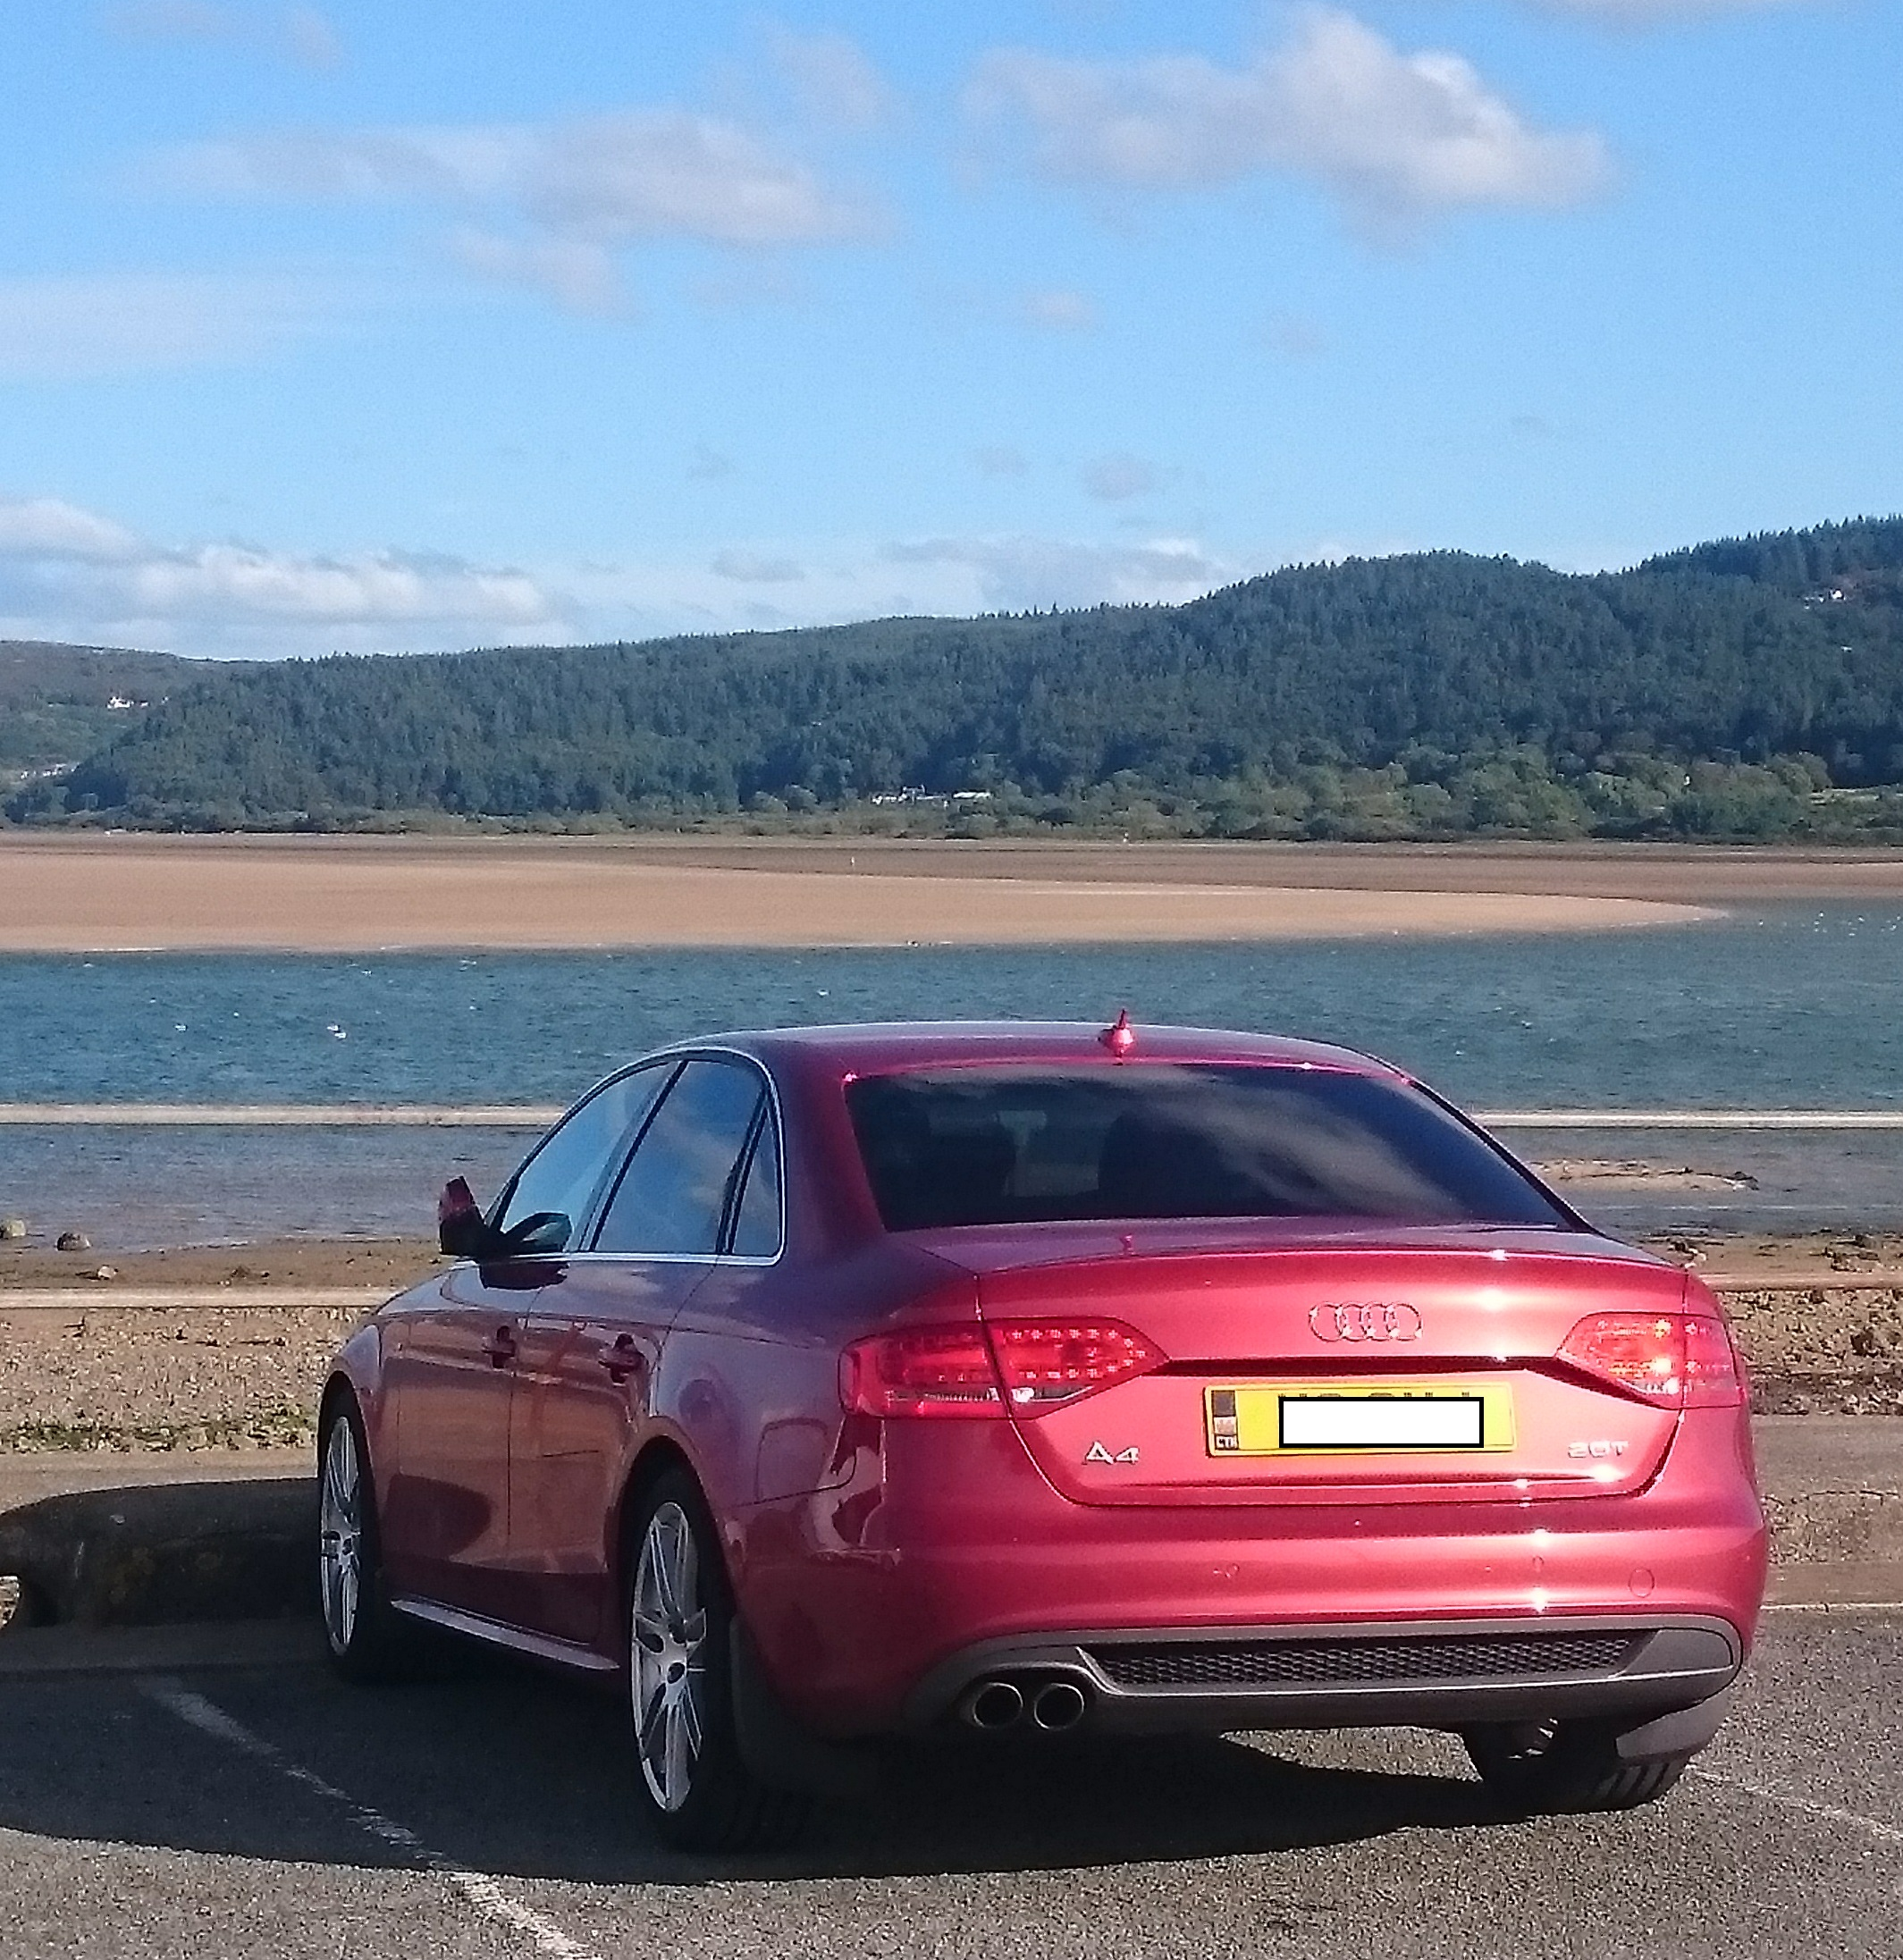 Audi anglesey pic.jpg